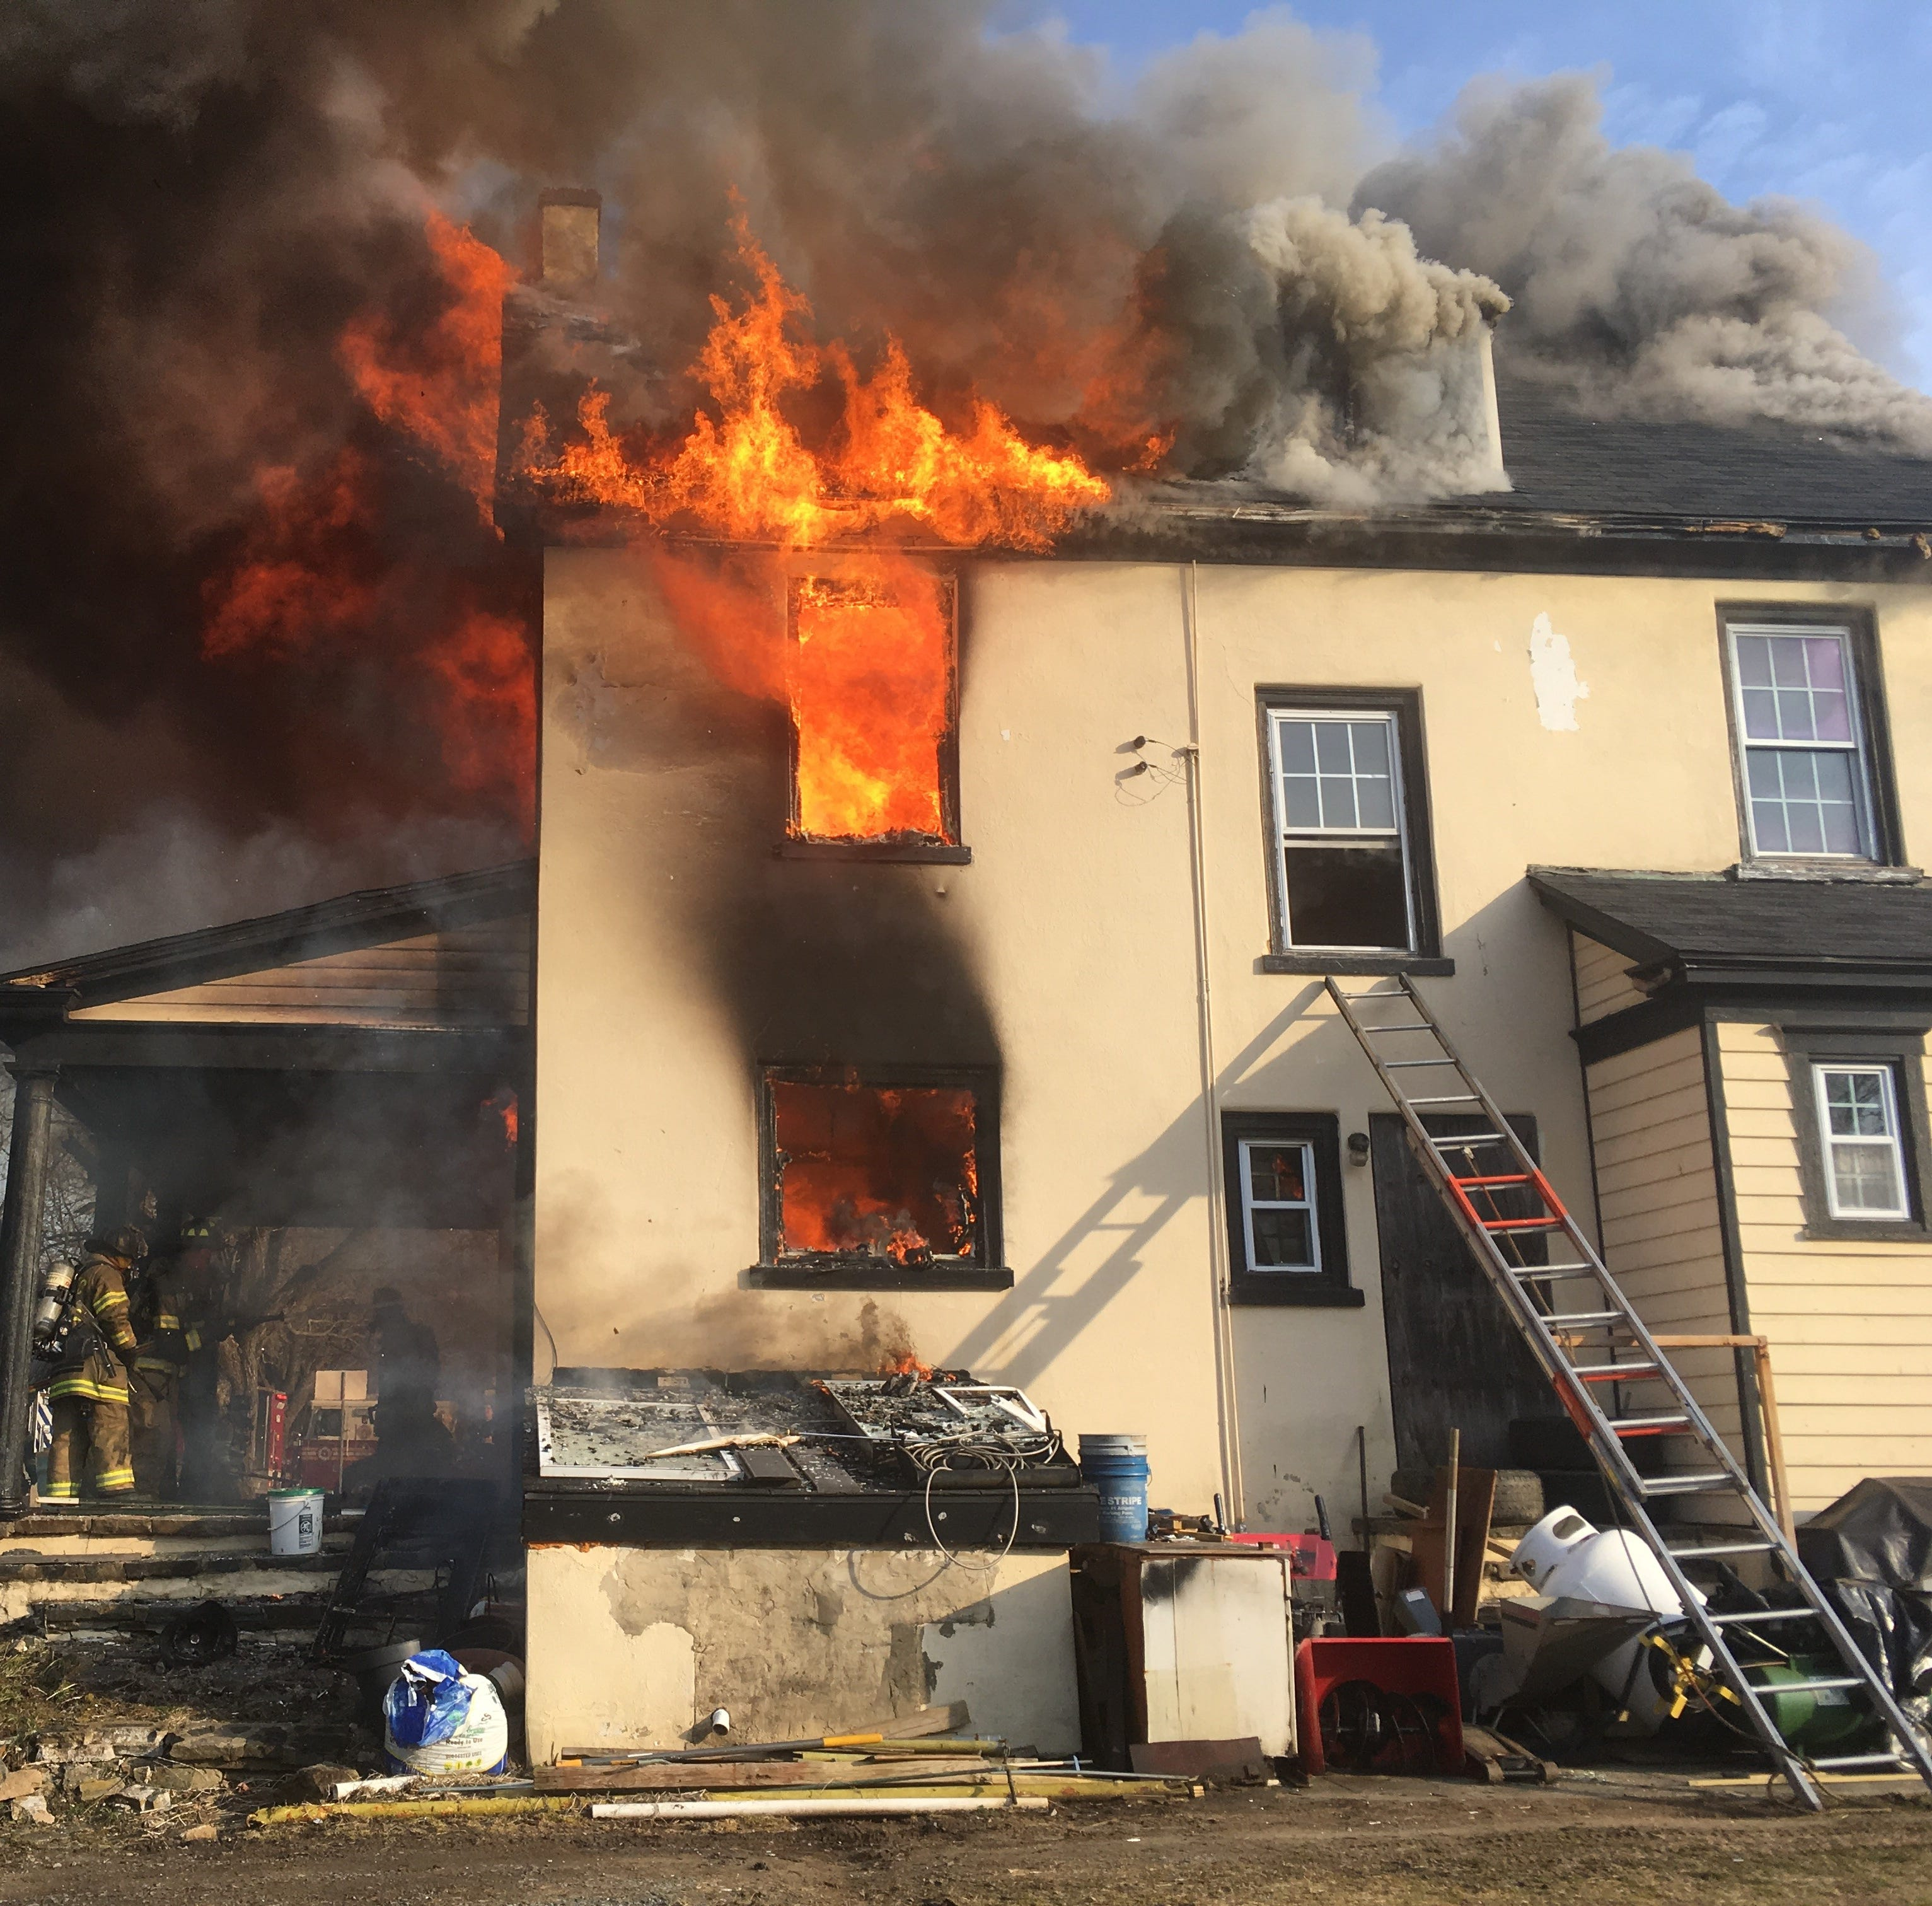 Where was the water when a firefighter was trapped in burning house?